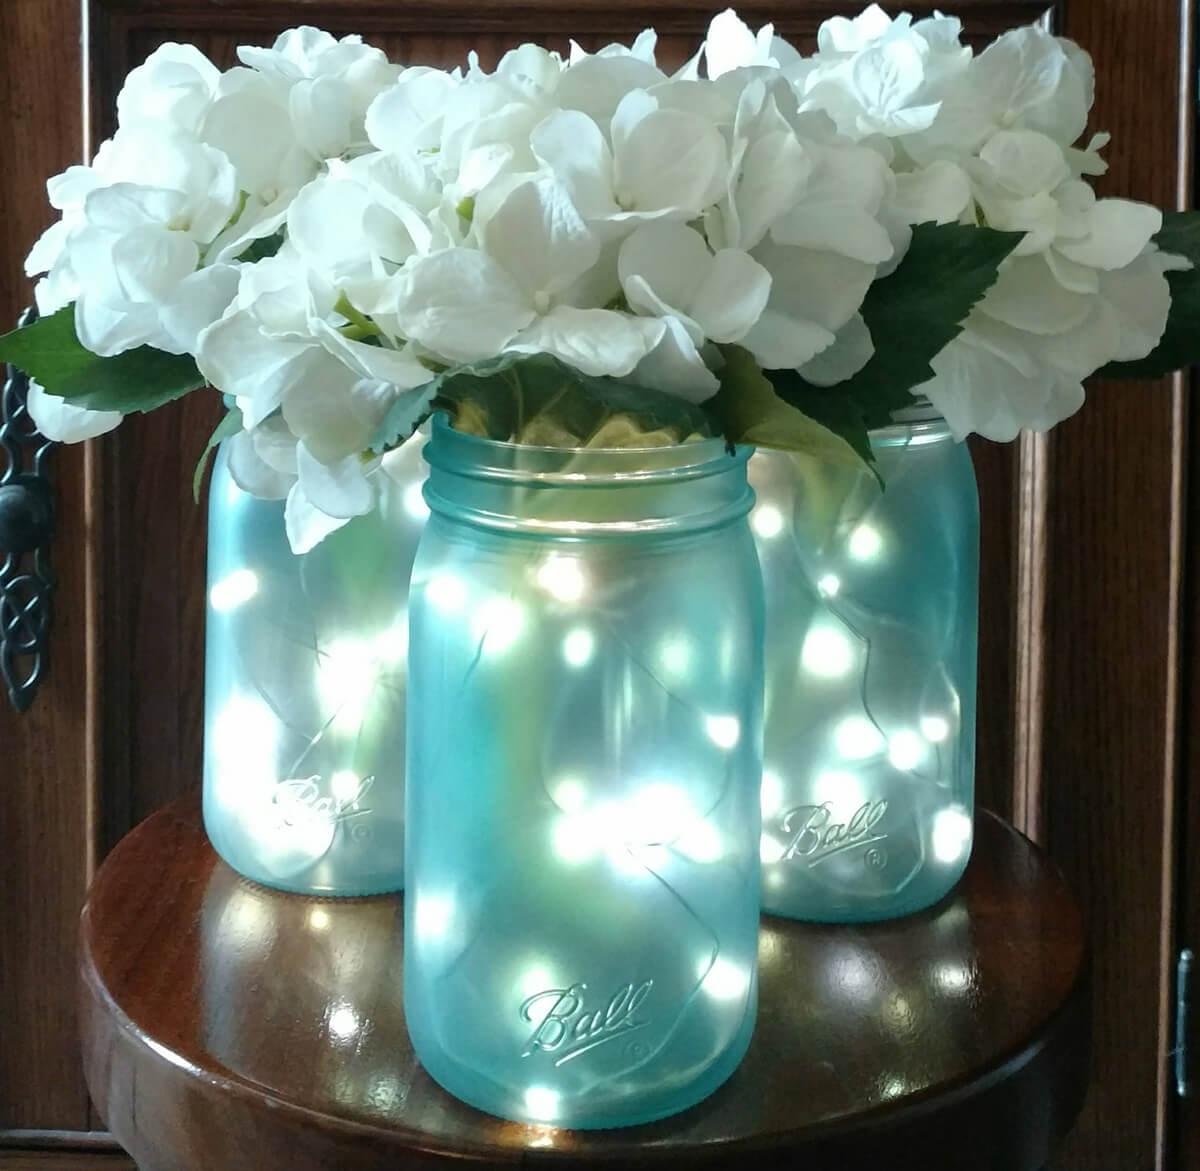 15 Best Mason Jar Table Decoration And Centerpiece Ideas For 2021